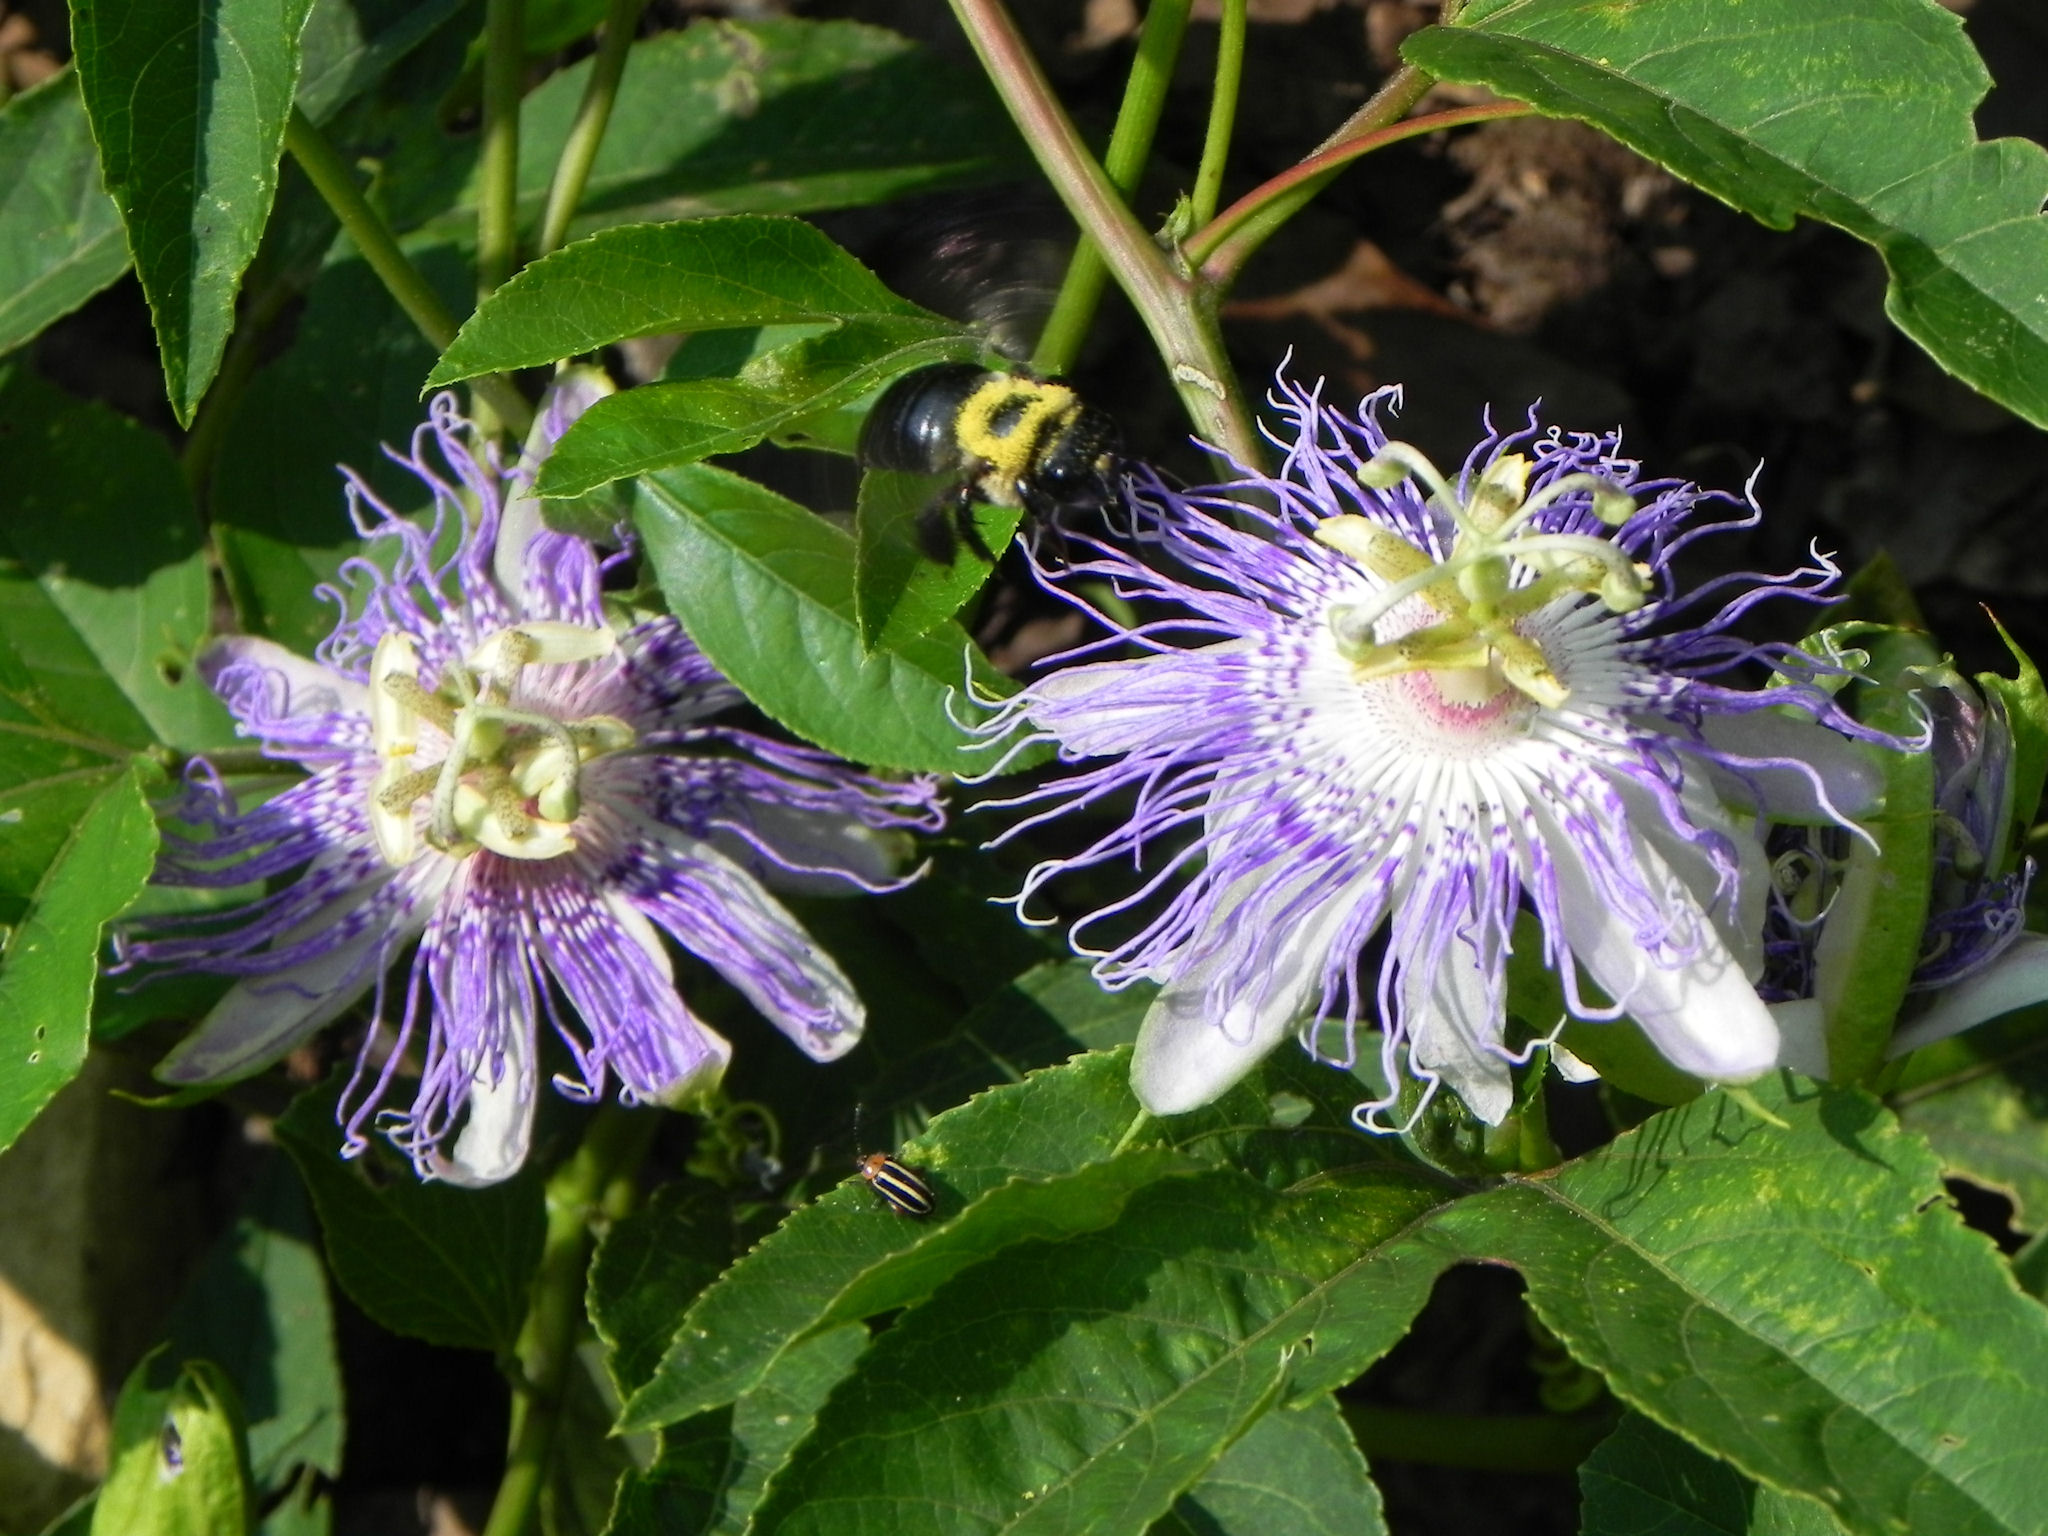 Purple Flowers of Passion Flower